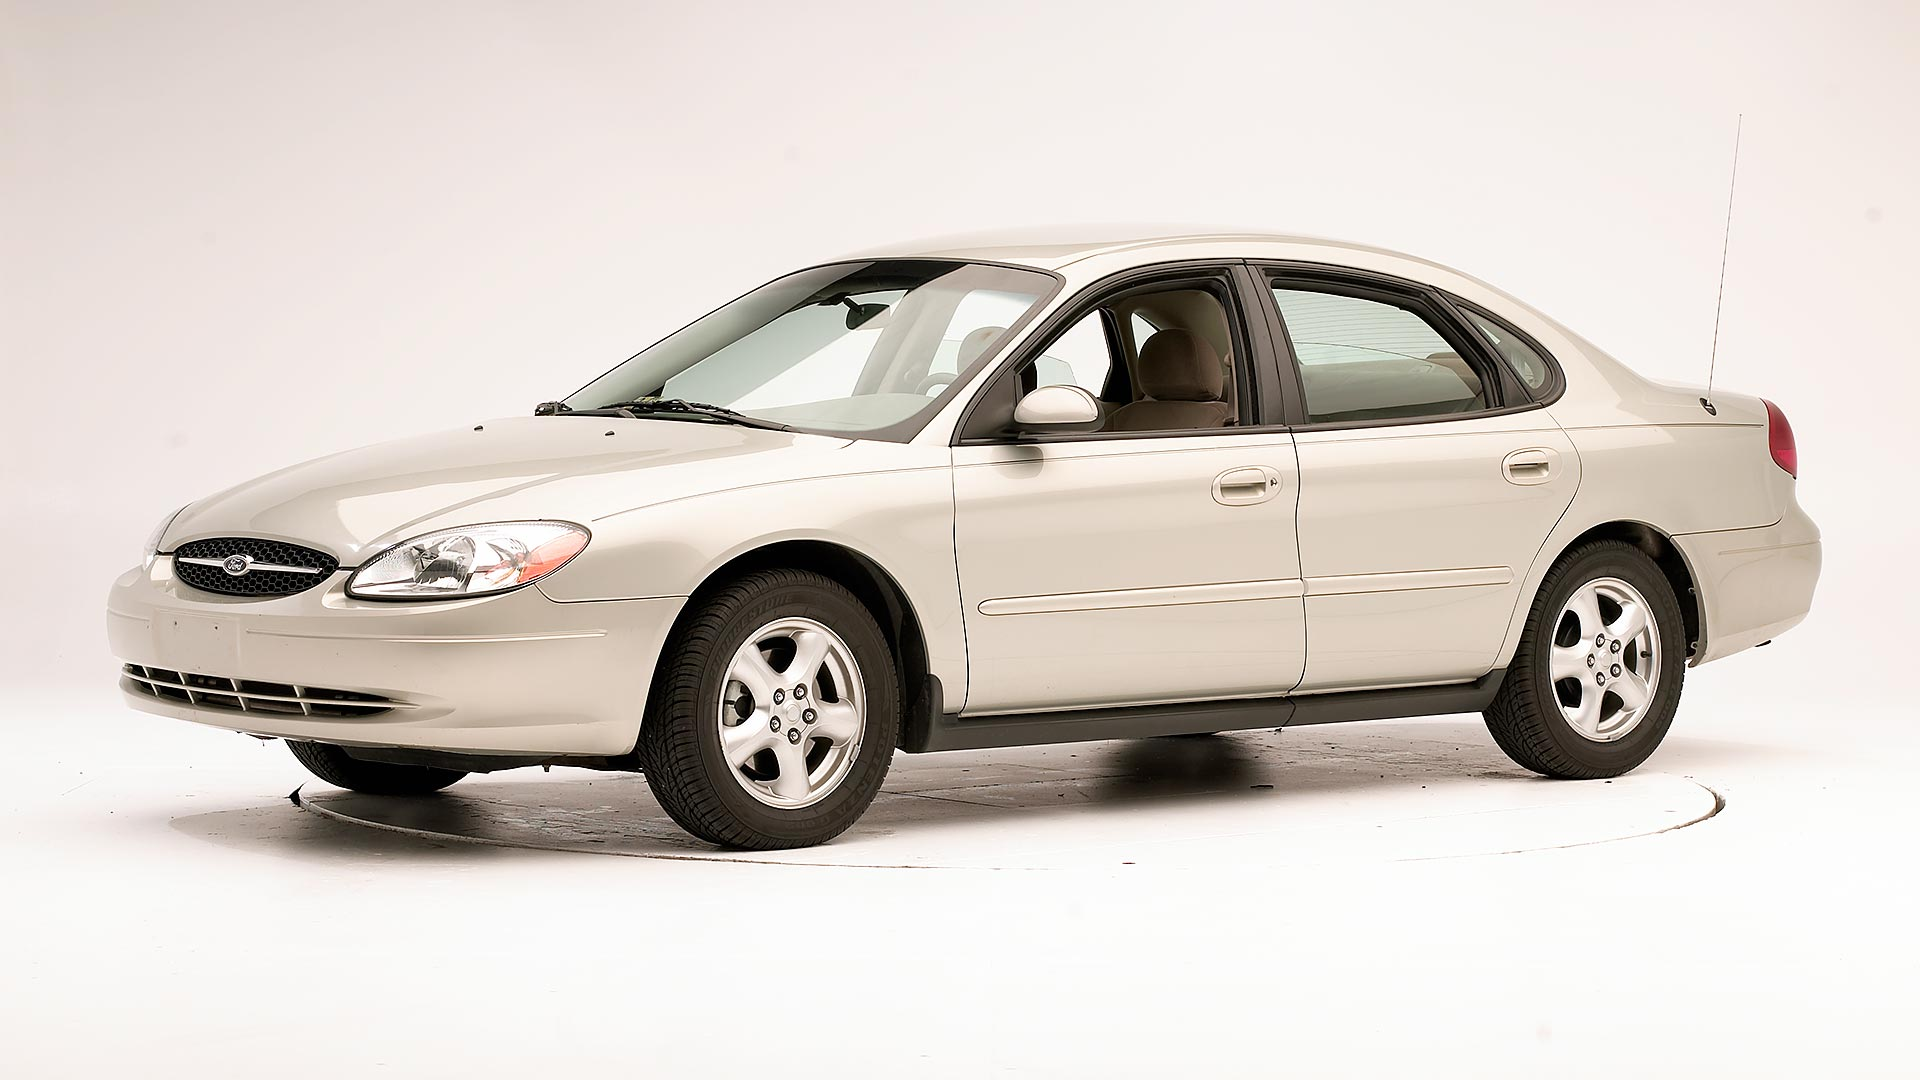 2004 Ford Taurus 4-door sedan